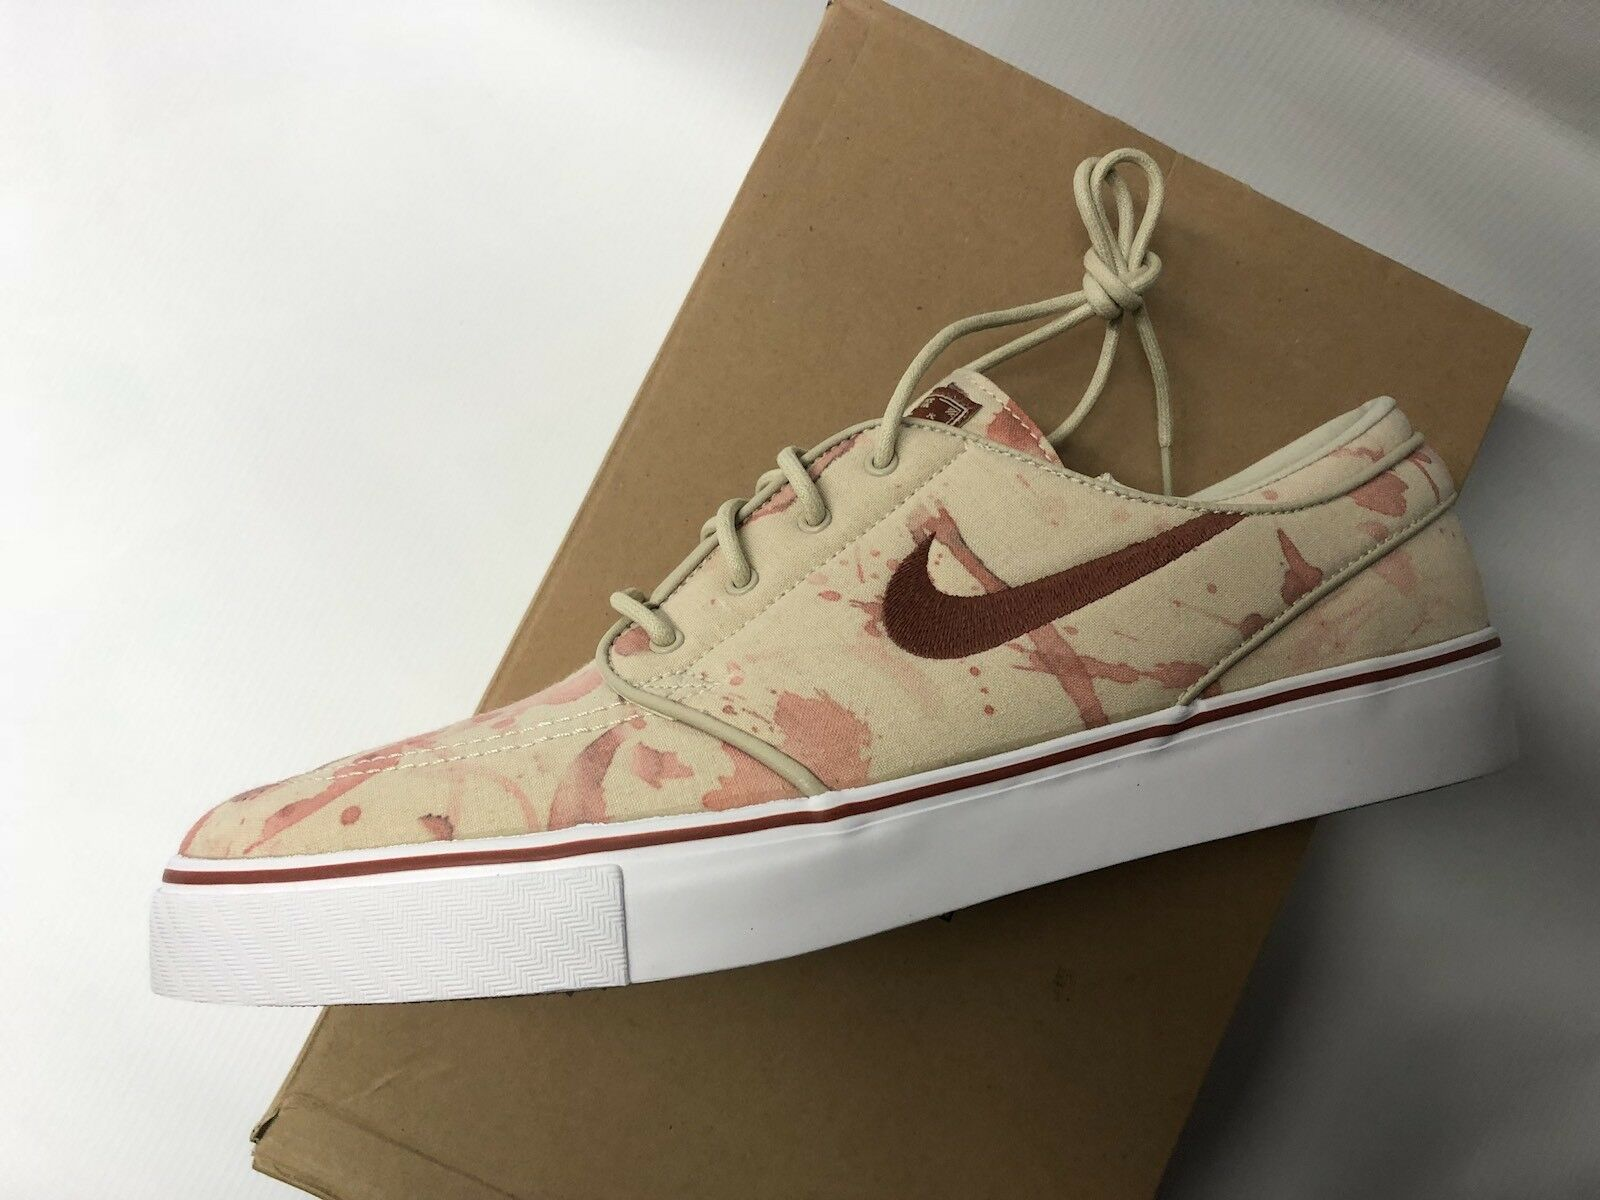 Nike SB Janoski Wino Wine Blood Splatter Size 10.5 NEW